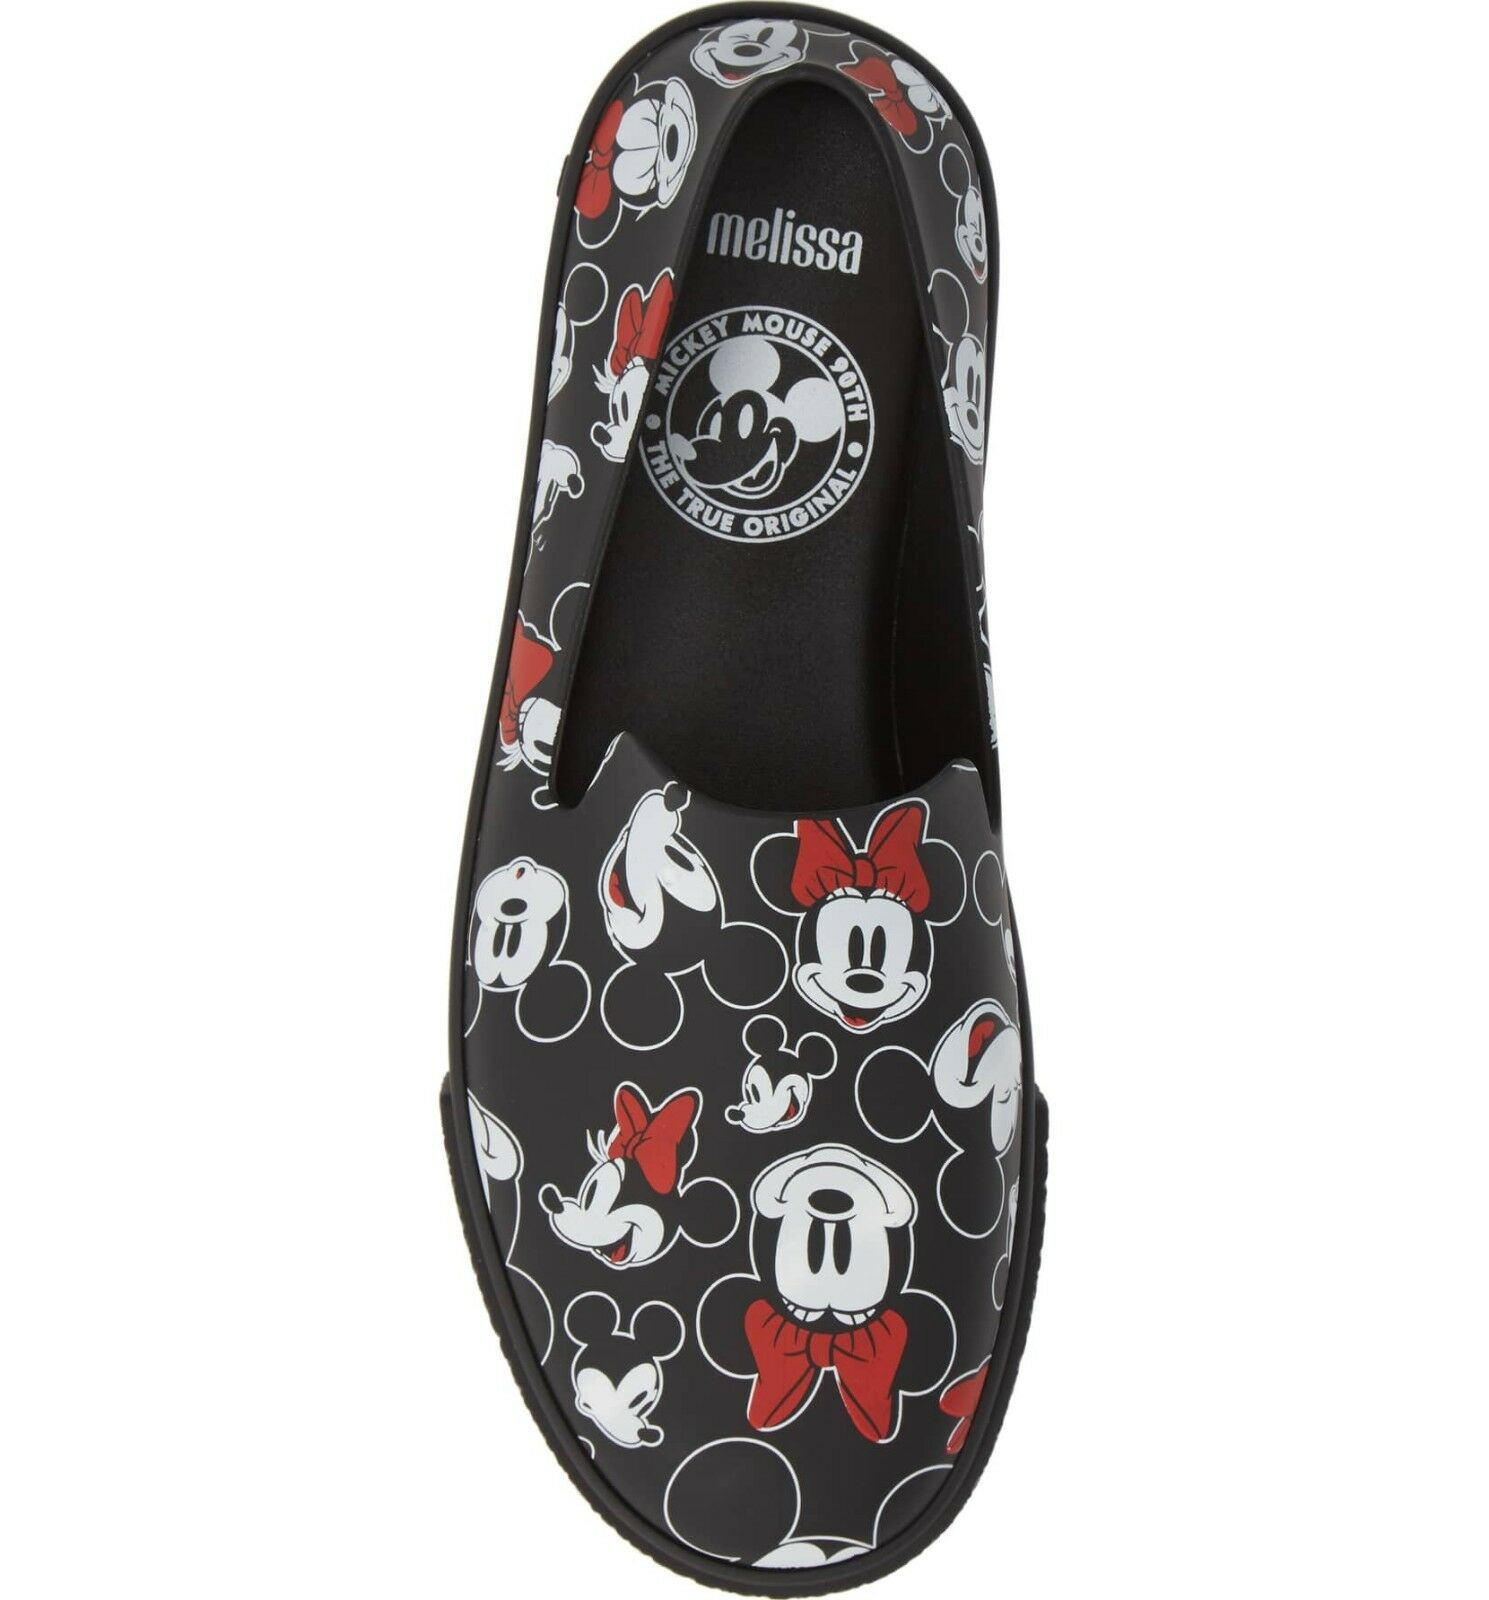 NEW MELISSA Women's Ground Mickey Minnie Mouse Disney Flats Slip On Sneaker sz 8